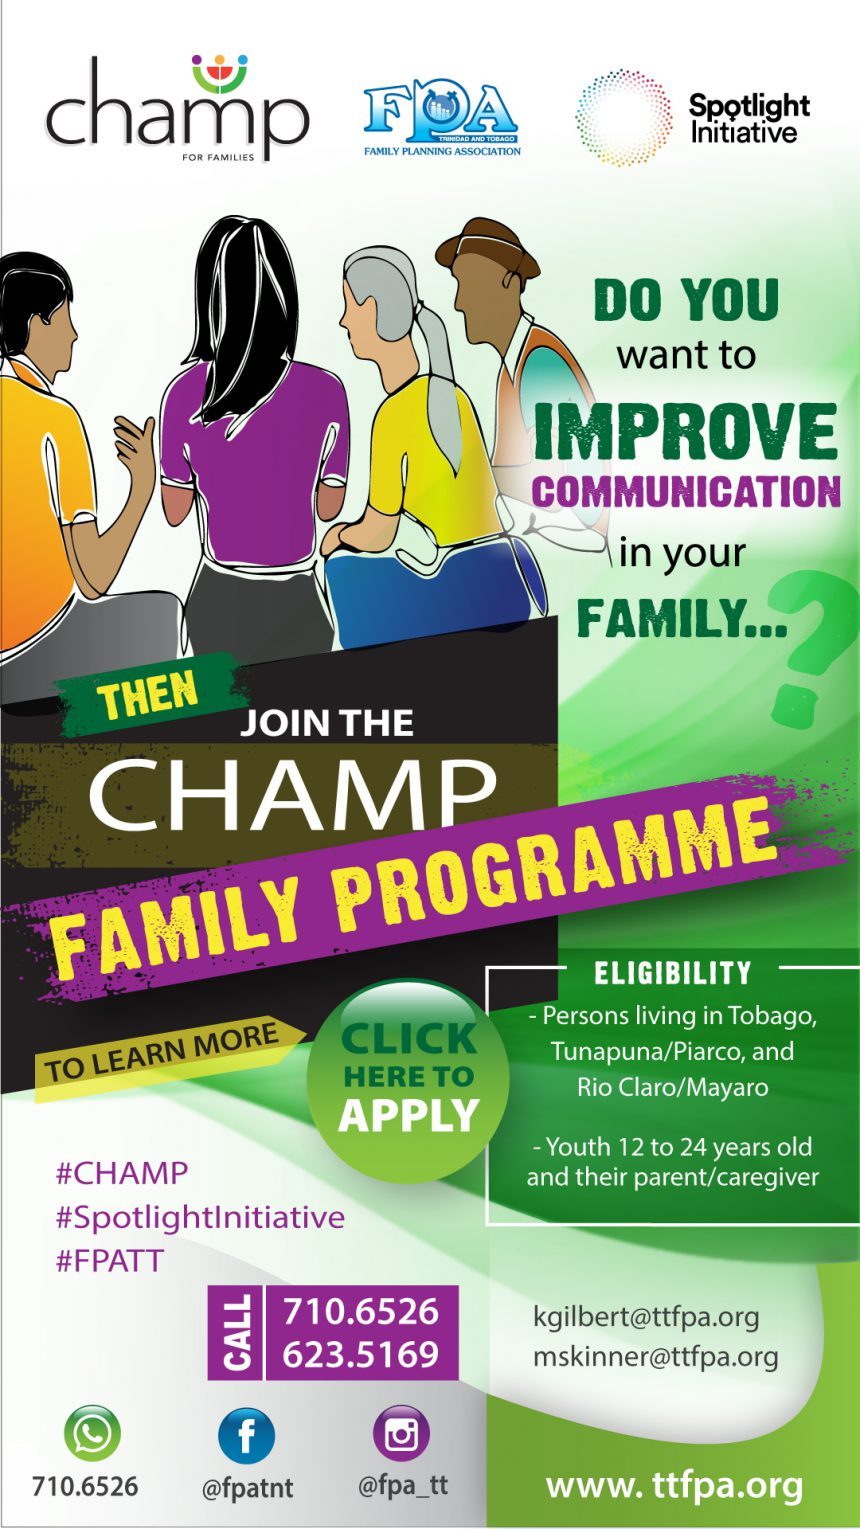 CHAMP is about building greater communication within families.